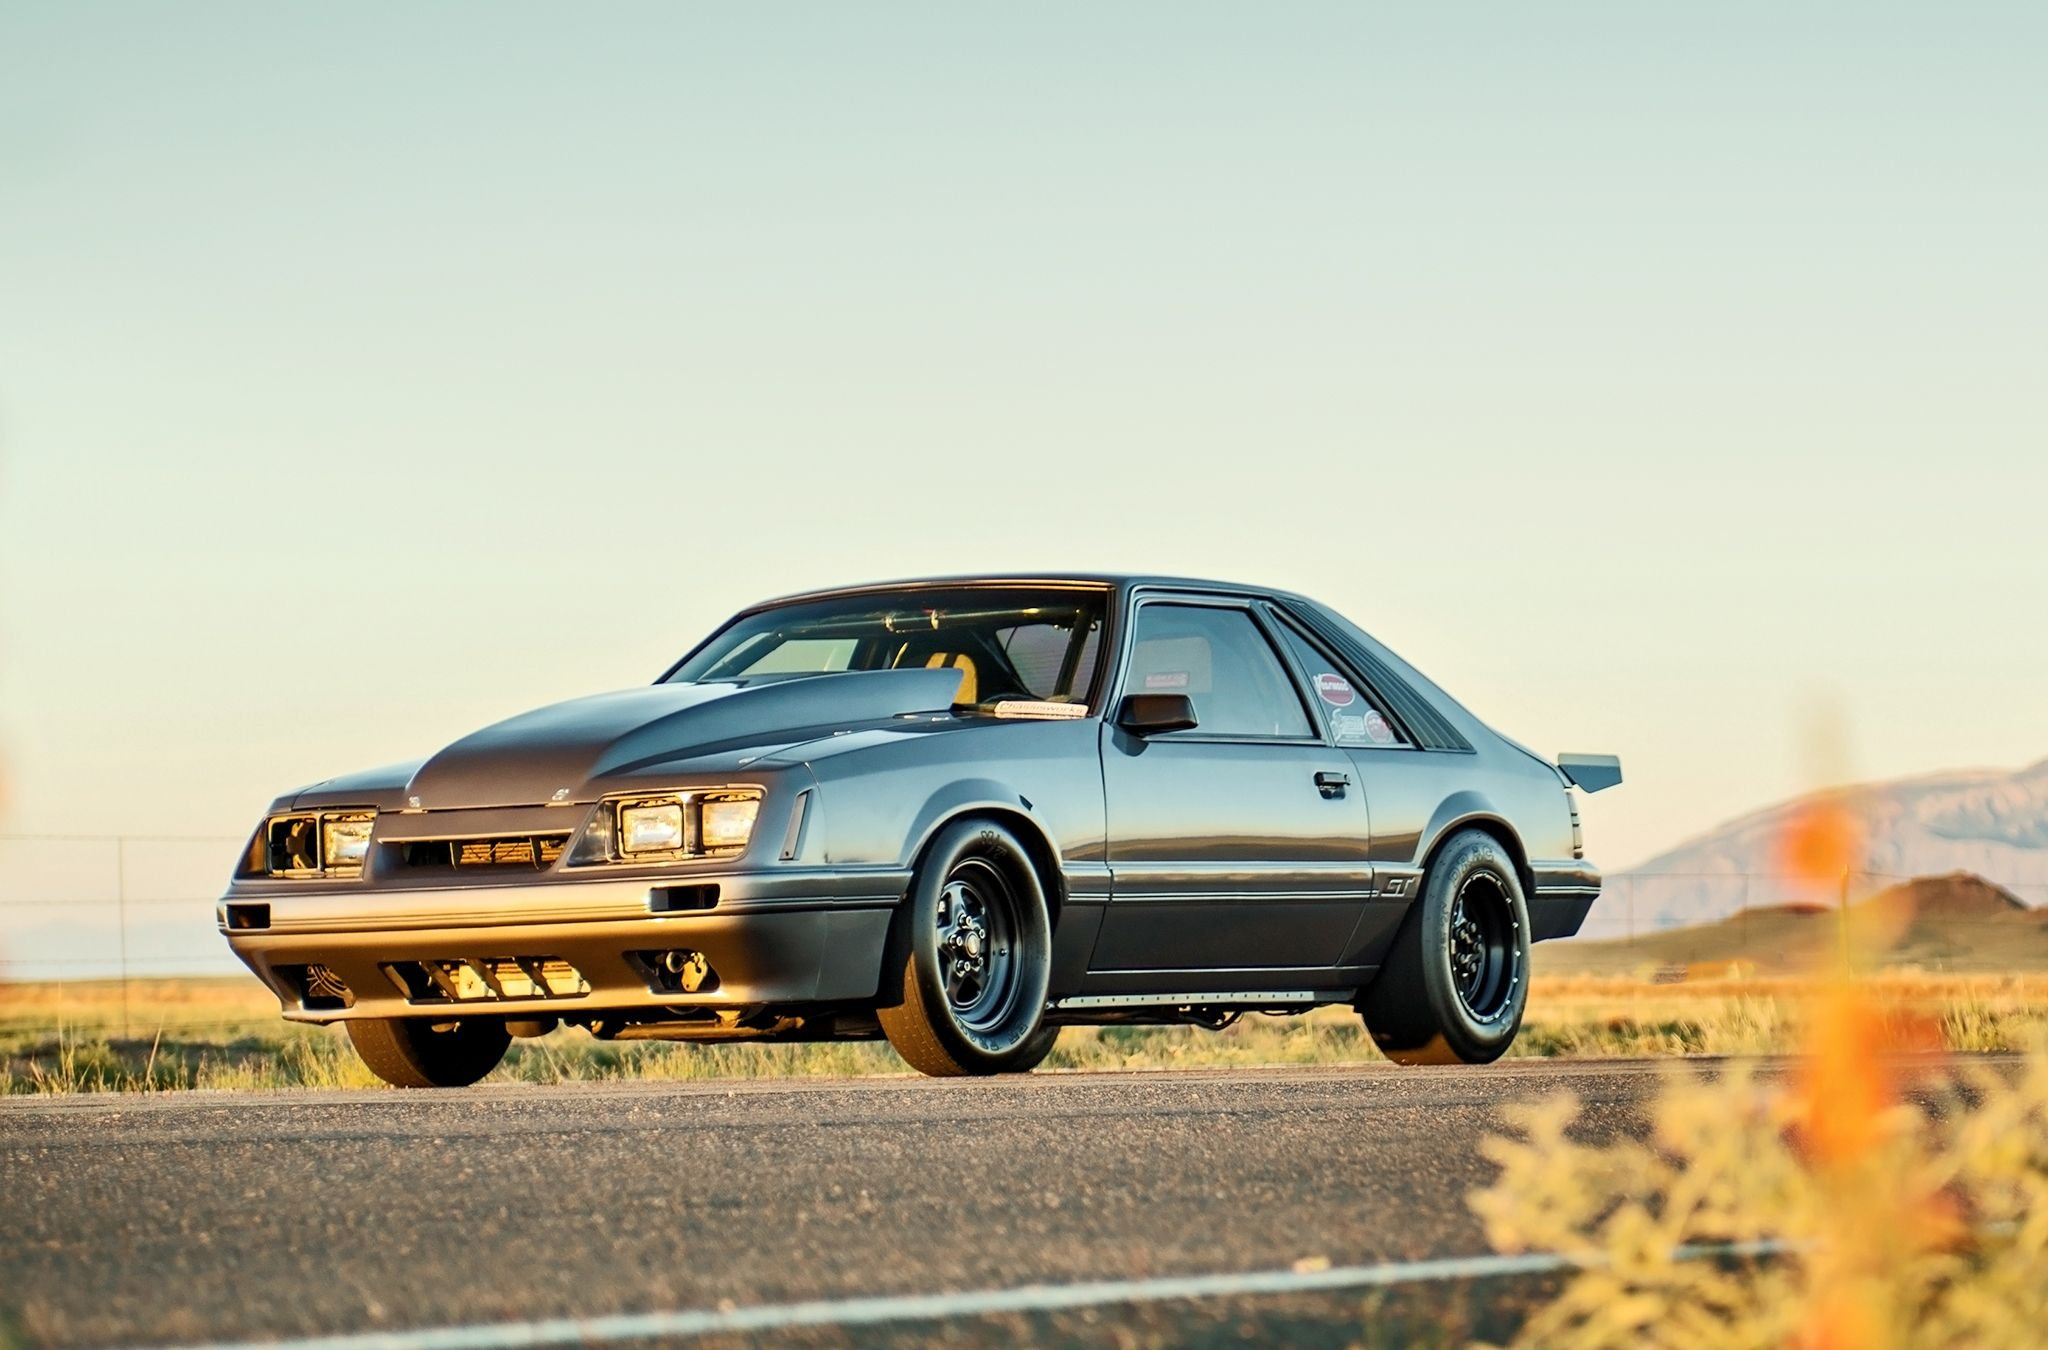 1986 Ford Mustang GT modified cars wallpaper | 2048x1350 ...